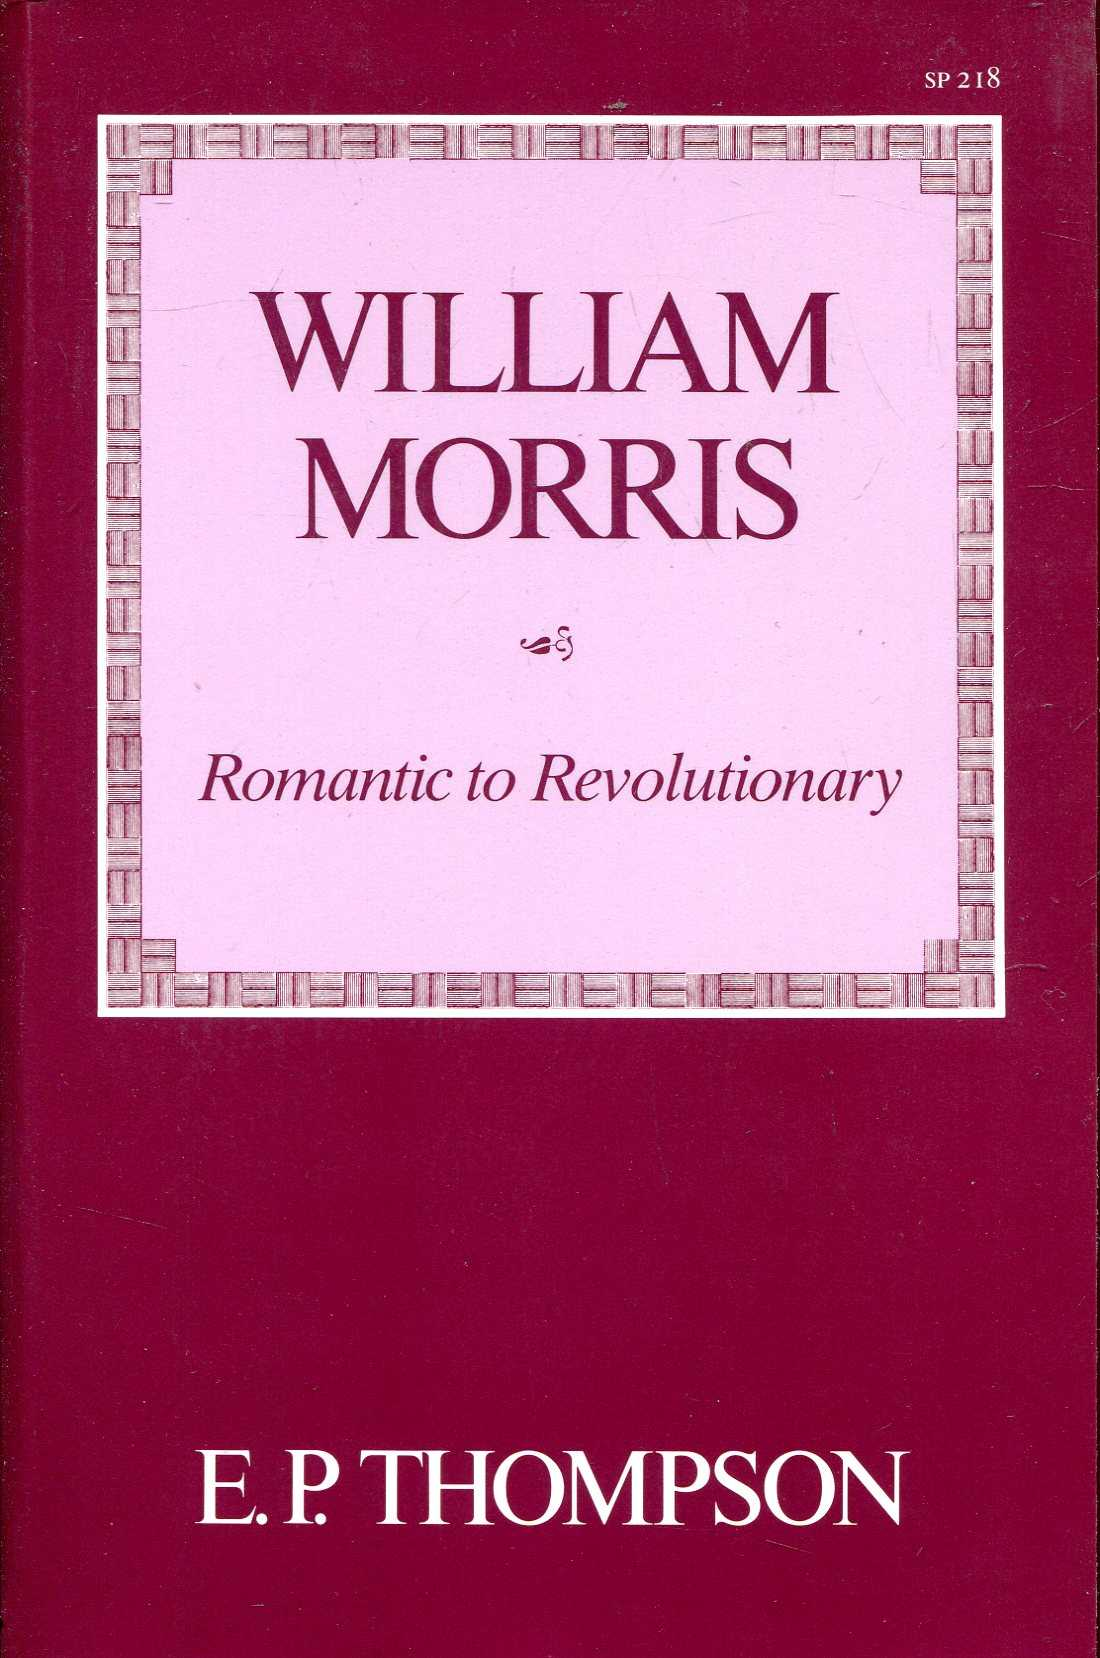 Image for William Morris: Romantic to Revolutionary